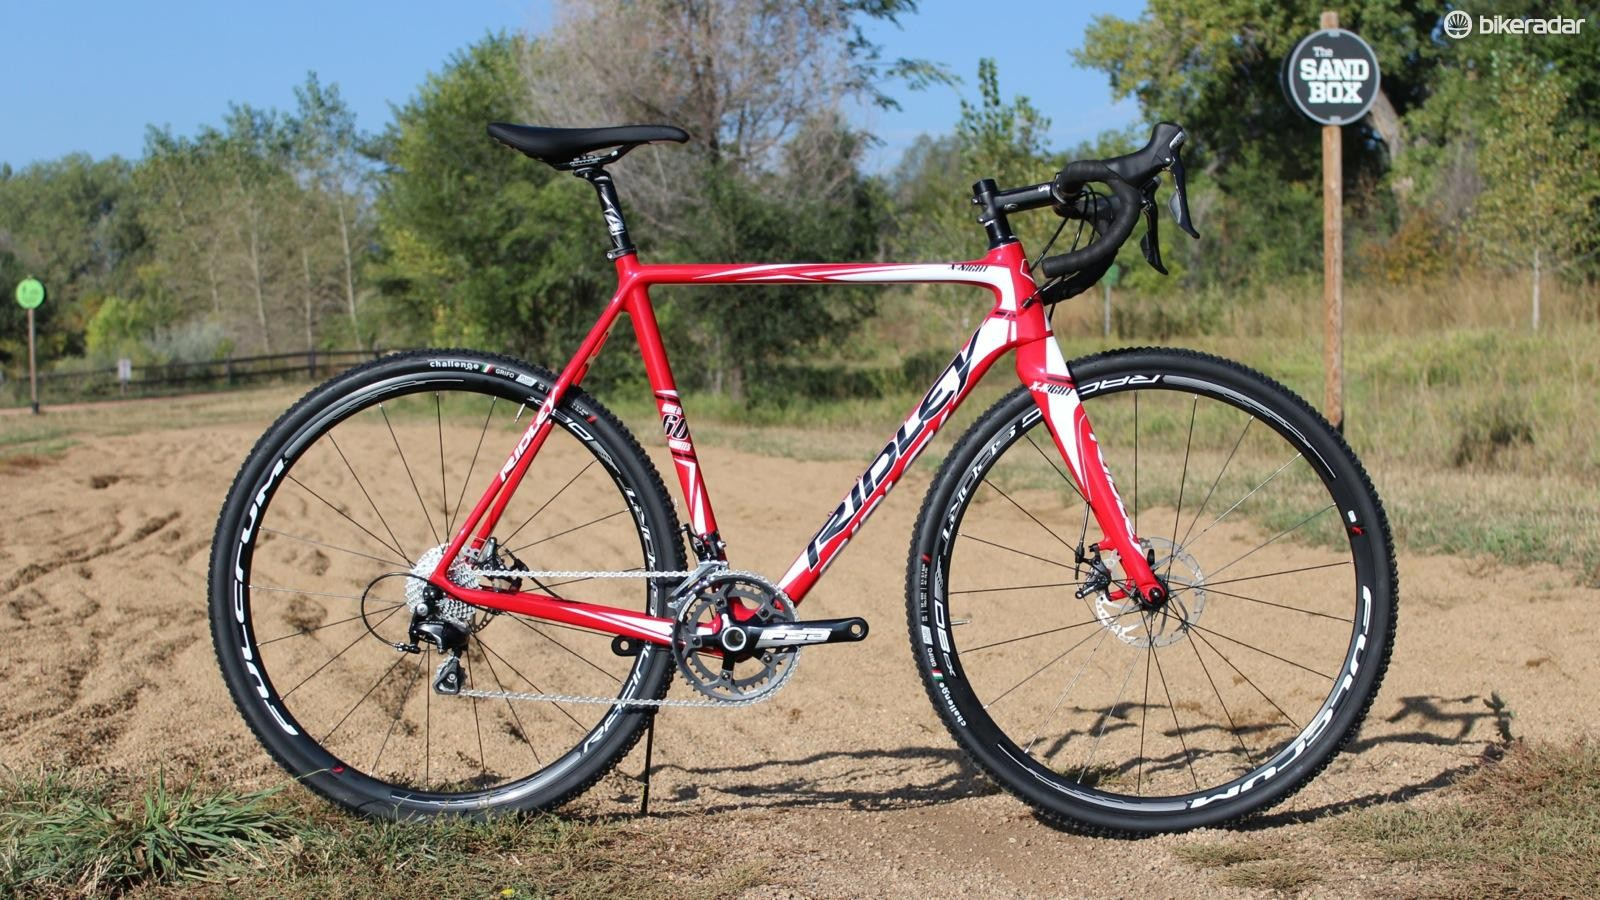 The Ridley X-Night with Shimano 105